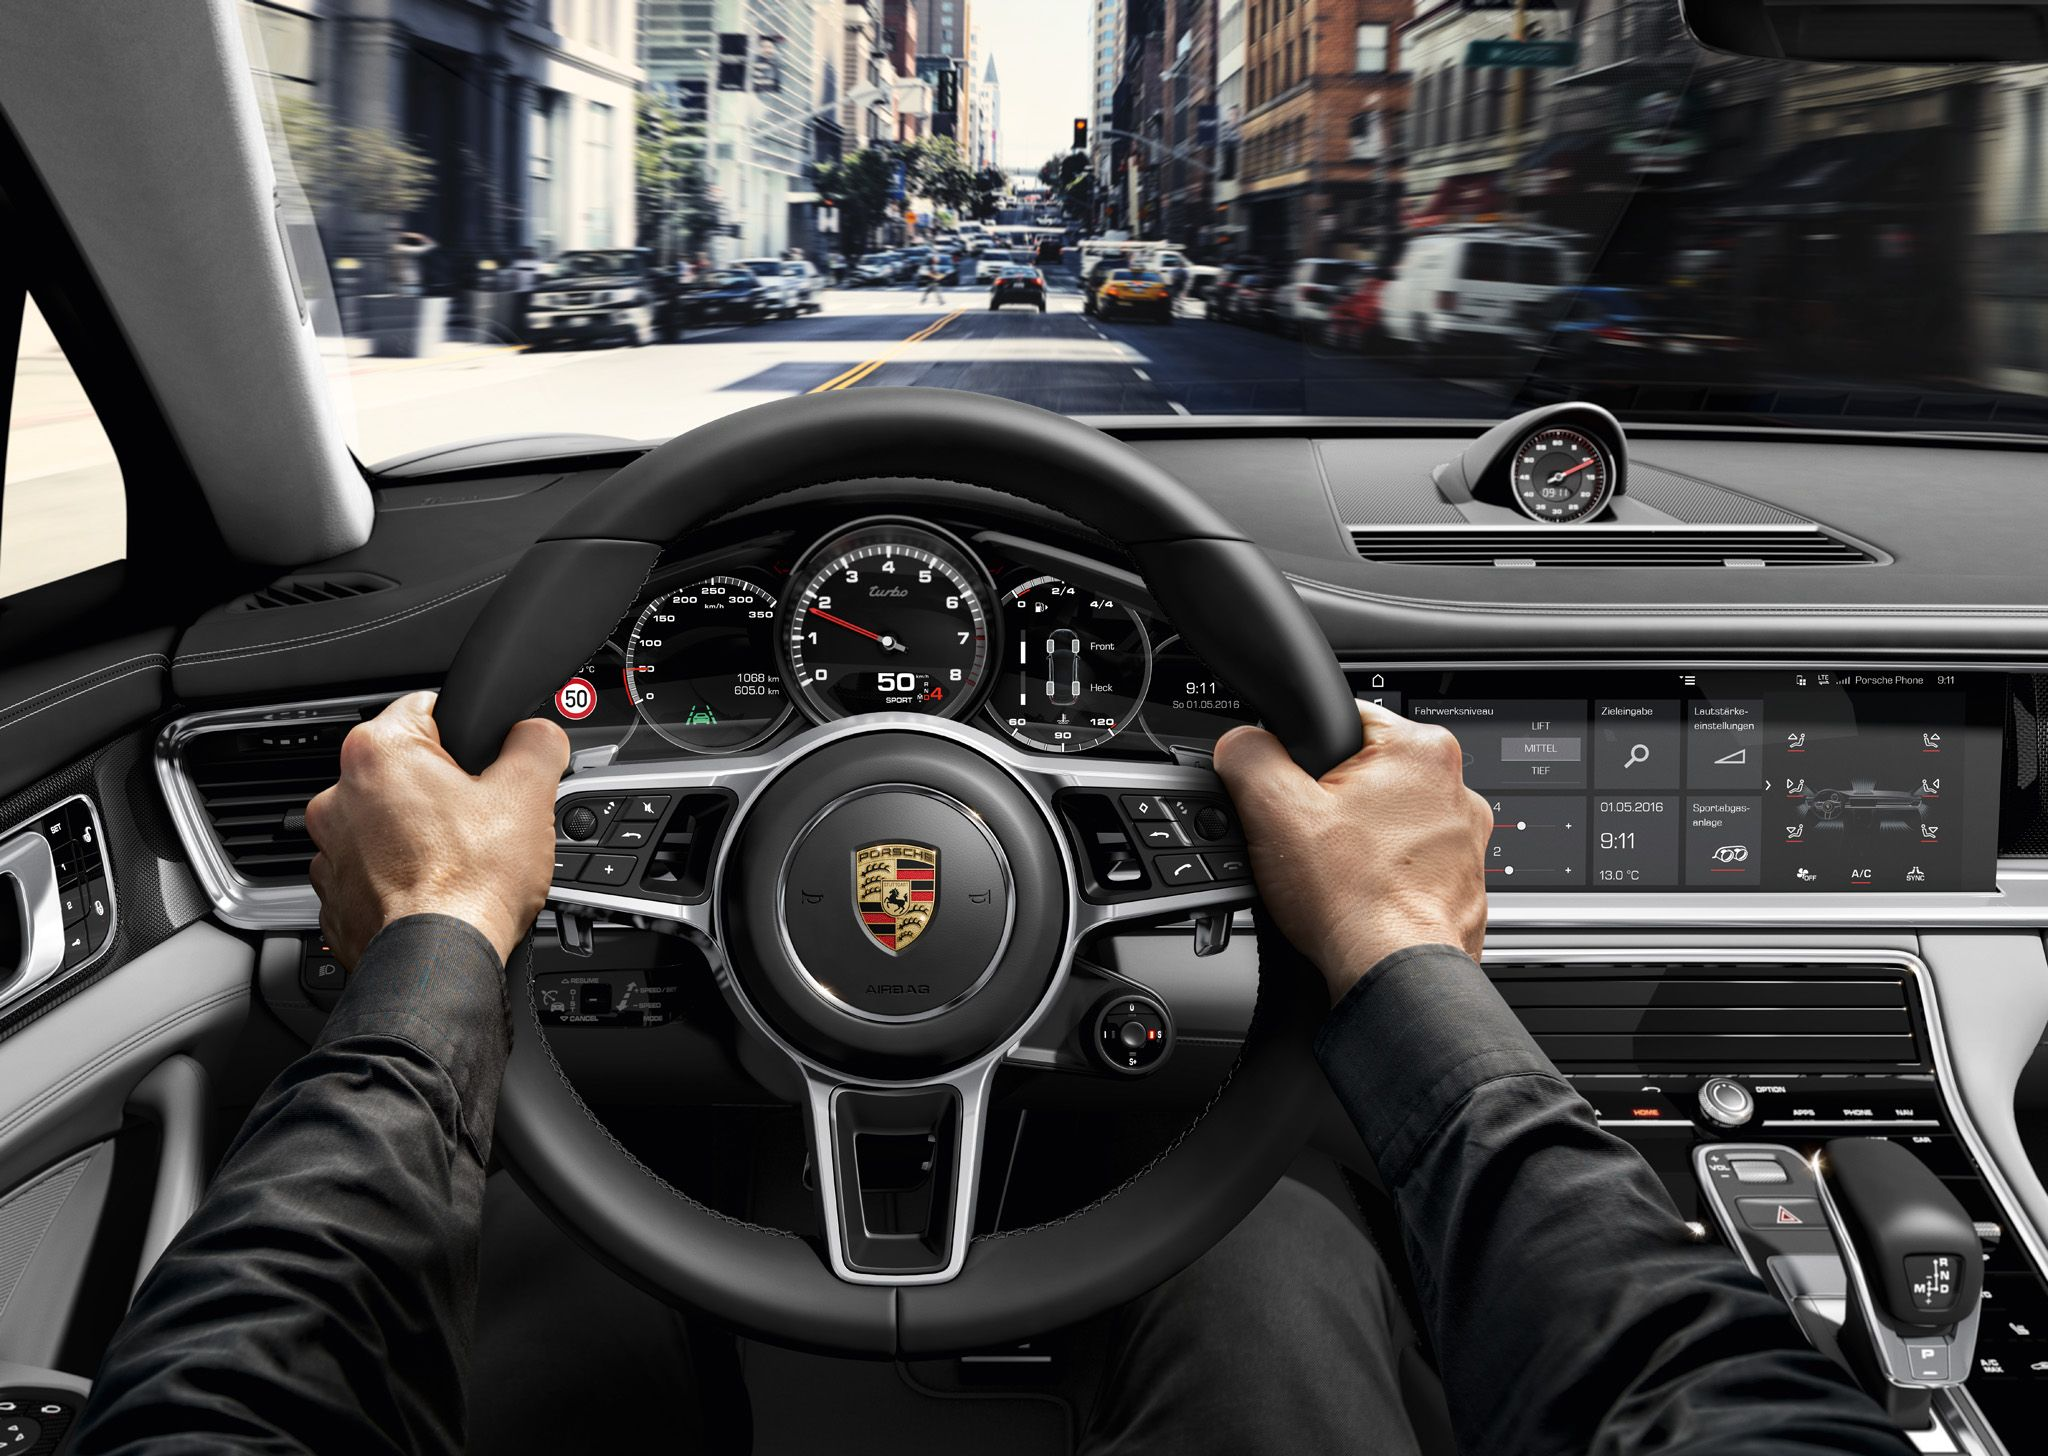 New Look Of Panamera Interior